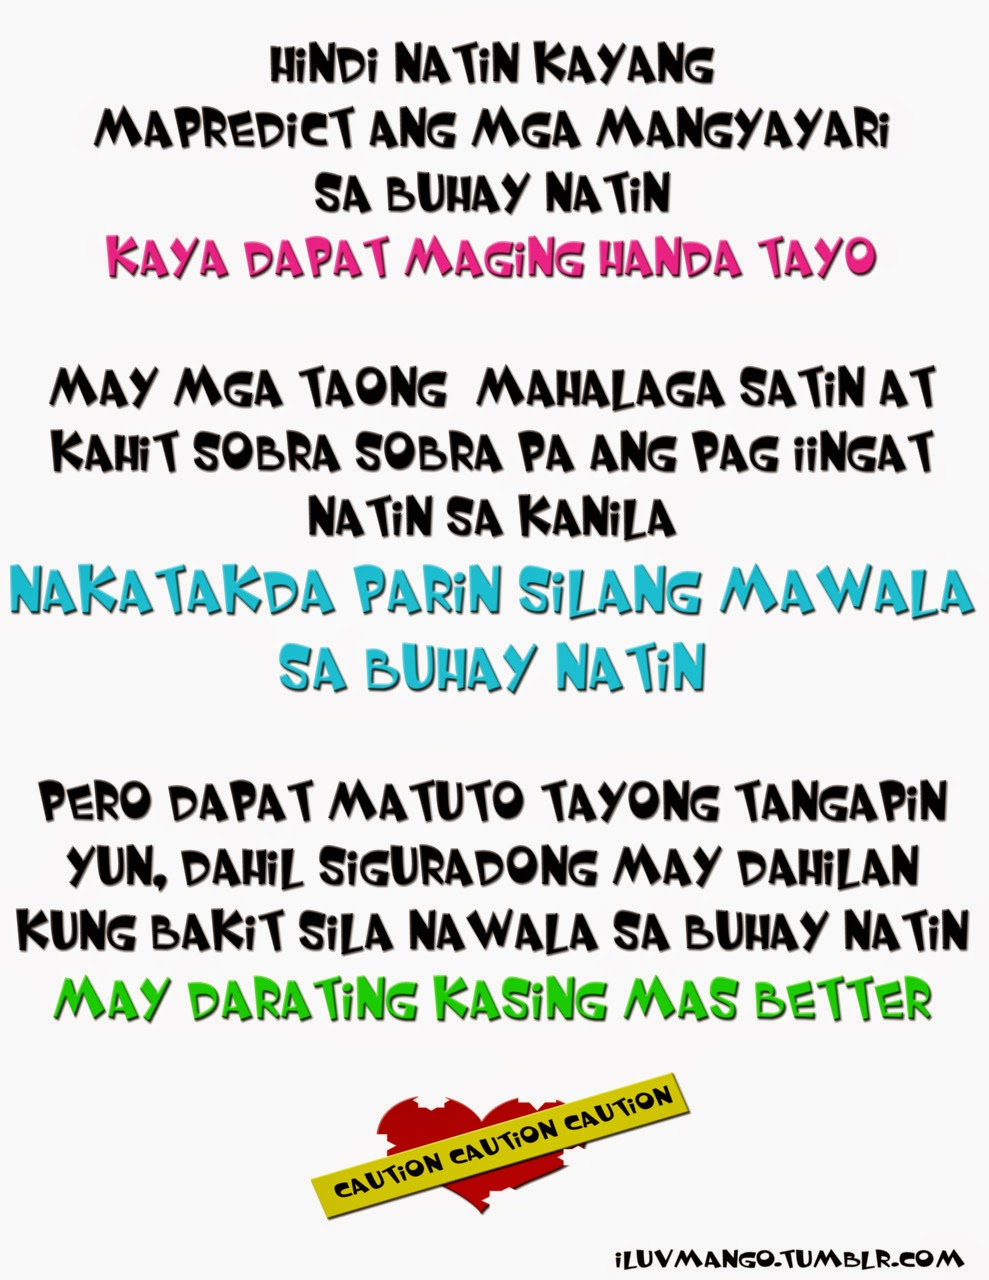 Tagalog Quotes Move On Quotesgram: Filipino Tagalog Quotes. QuotesGram